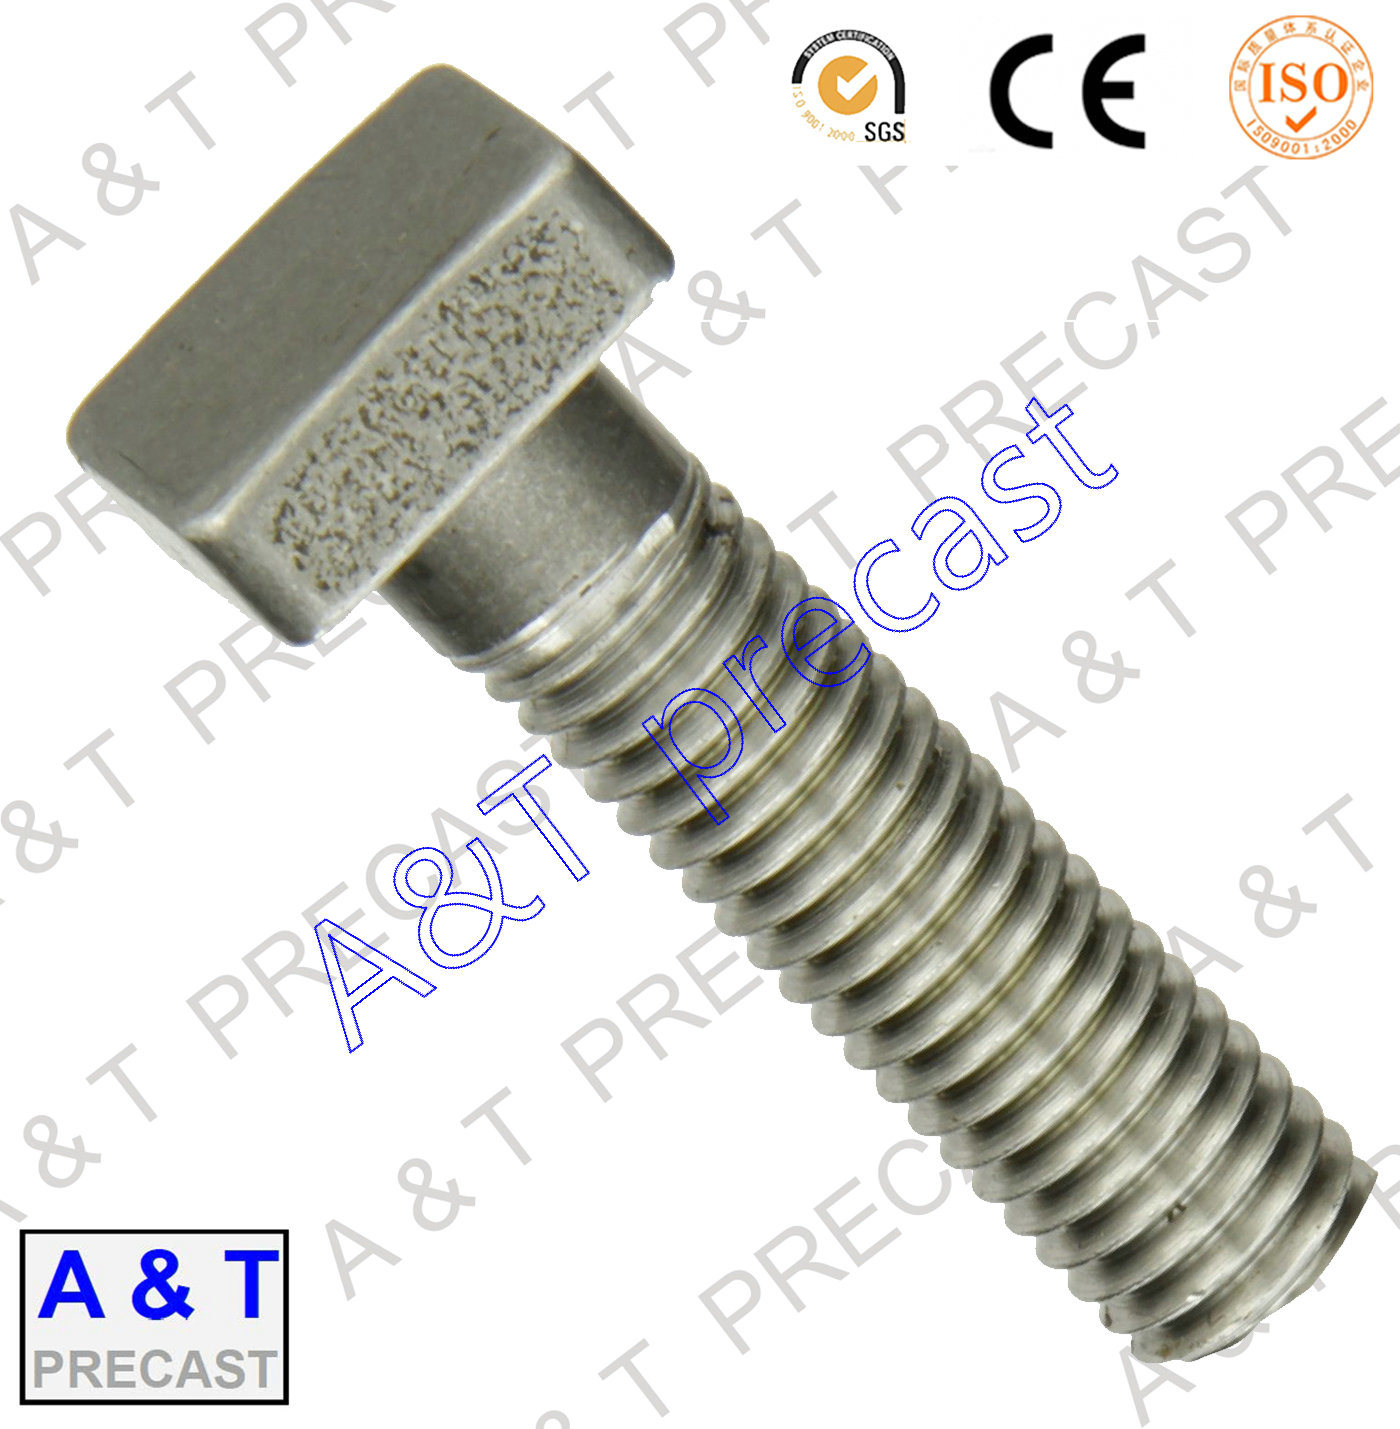 Customized/Special Shaped/T Head/Square Head Bolts (m16)